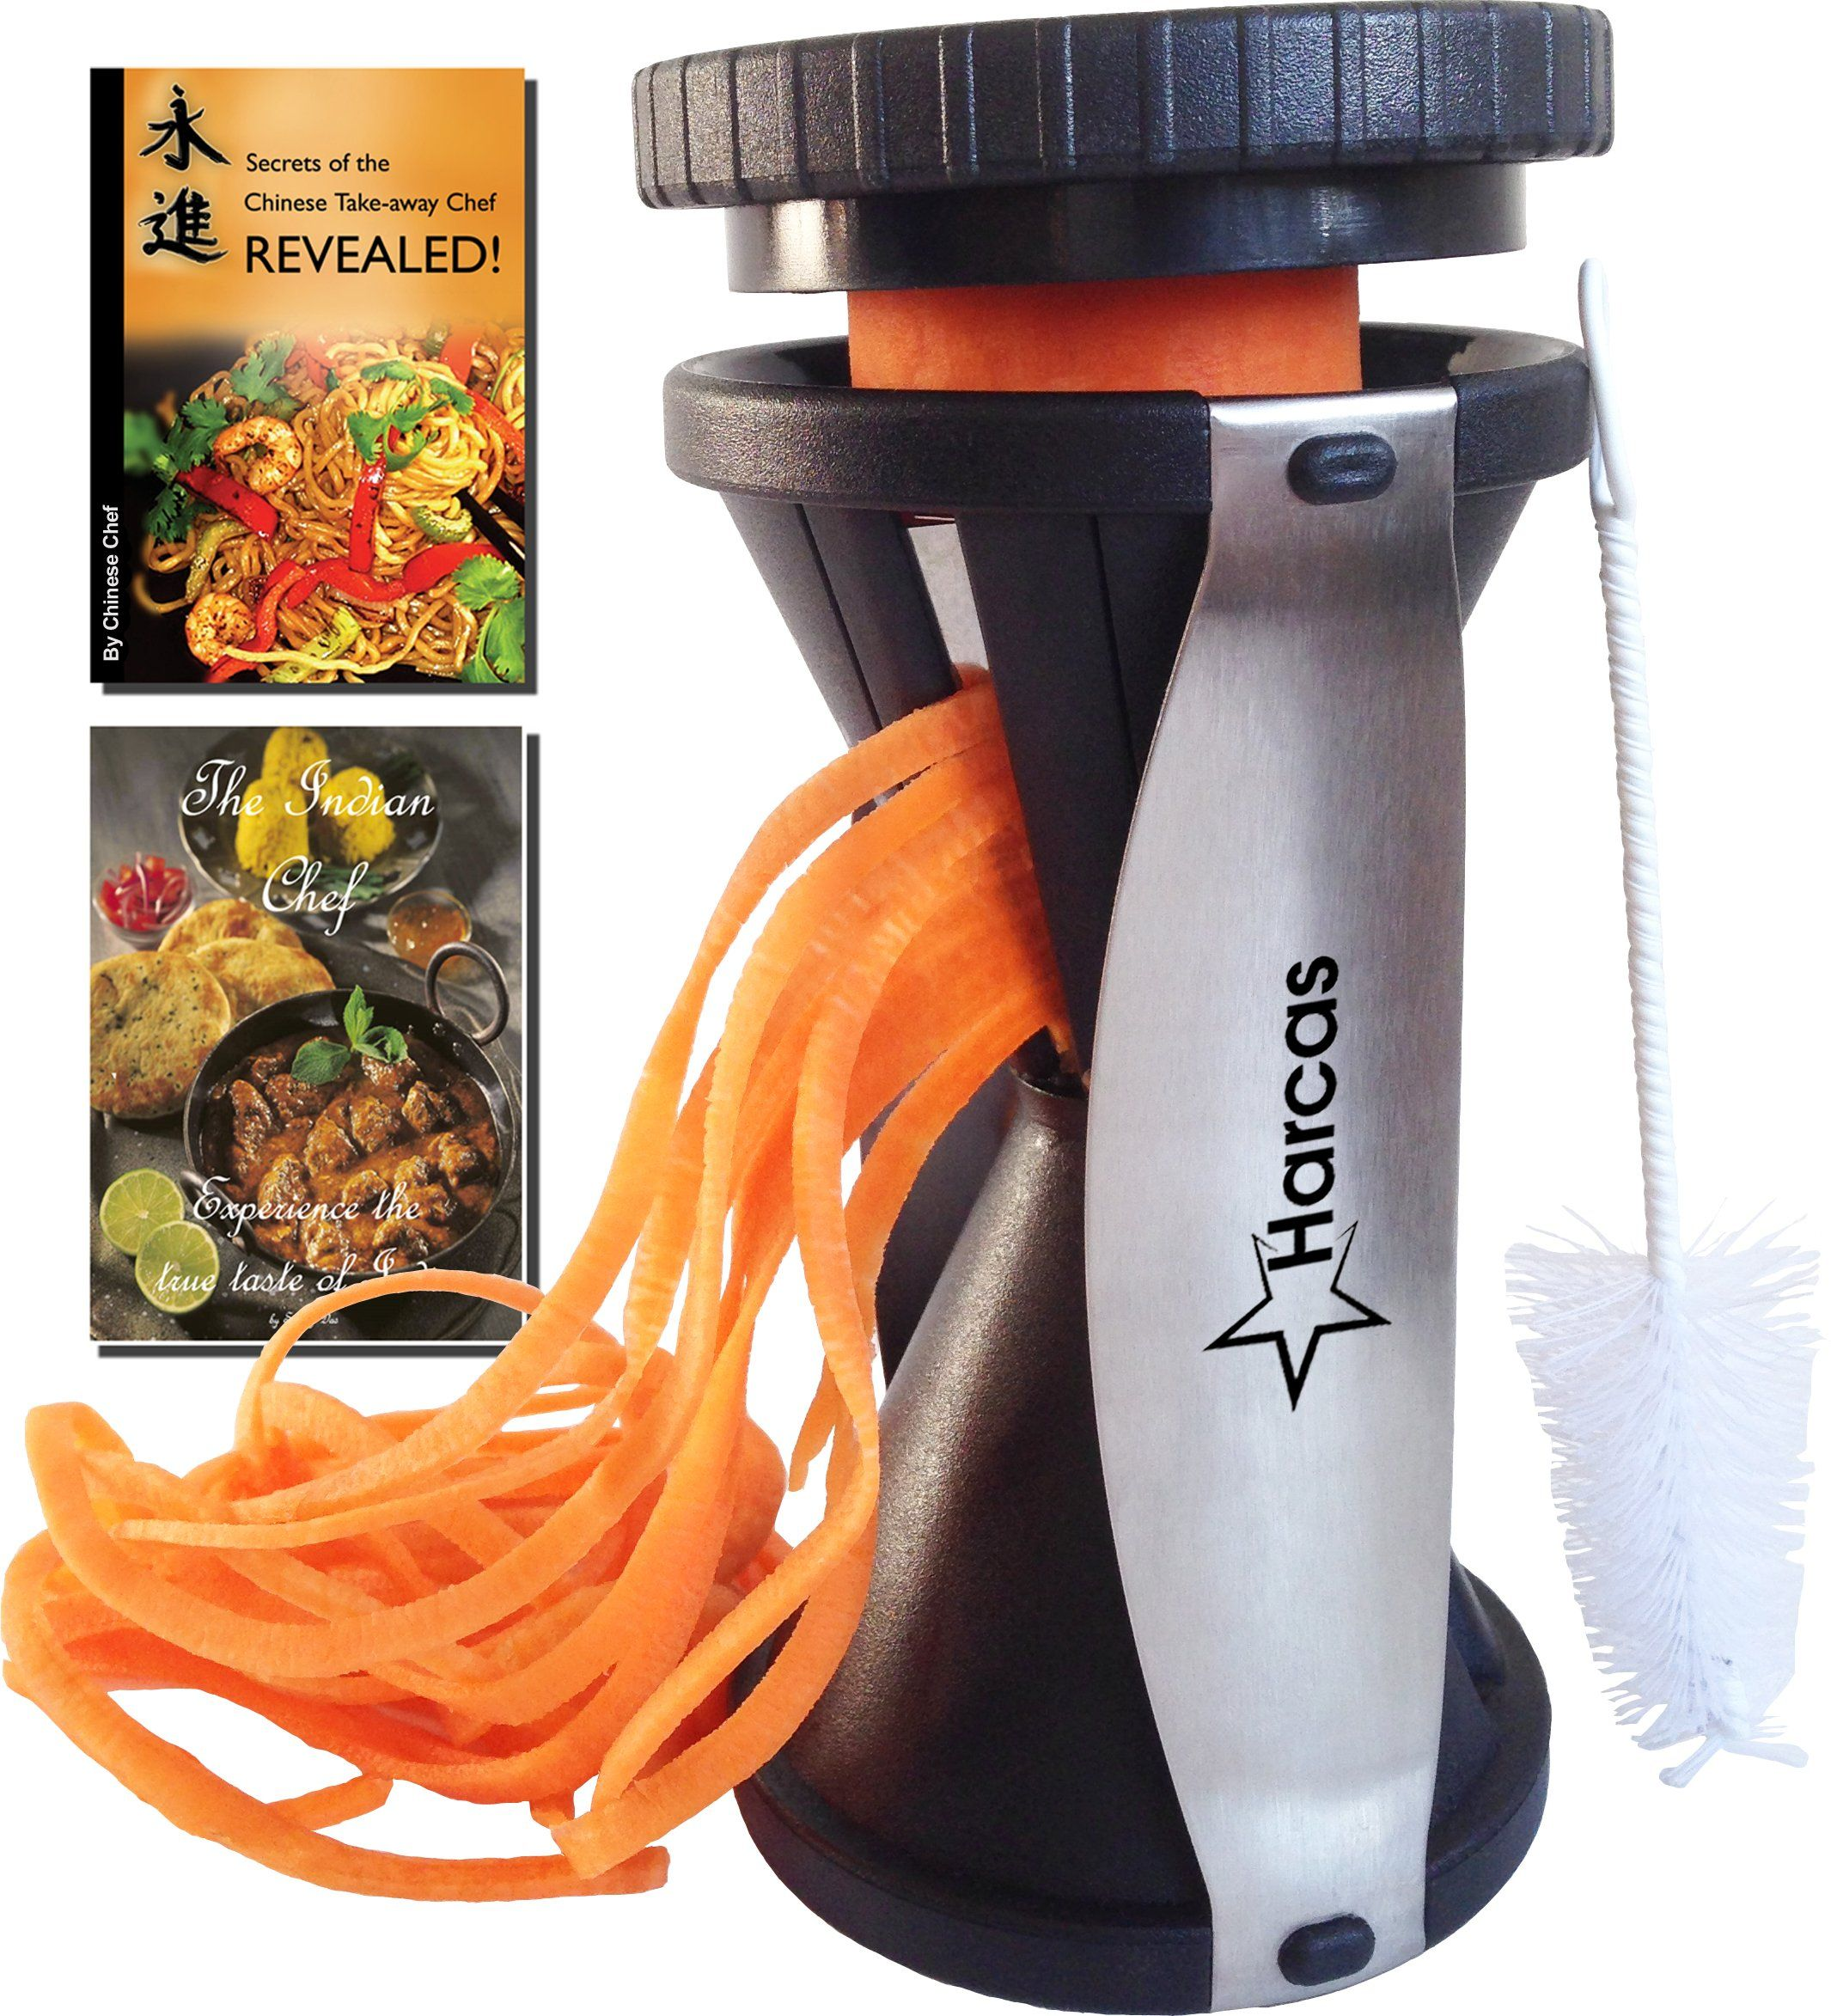 Spiral vegetable slicer hand held with cleaning brush zucchini and - Premium Spiralizer Spiral Vegetable Slicer Zucchini Pasta Noodle Maker Complete Bundle Cleaning Brush The Secrets Of The Chinese Chefs Ebook The Indian